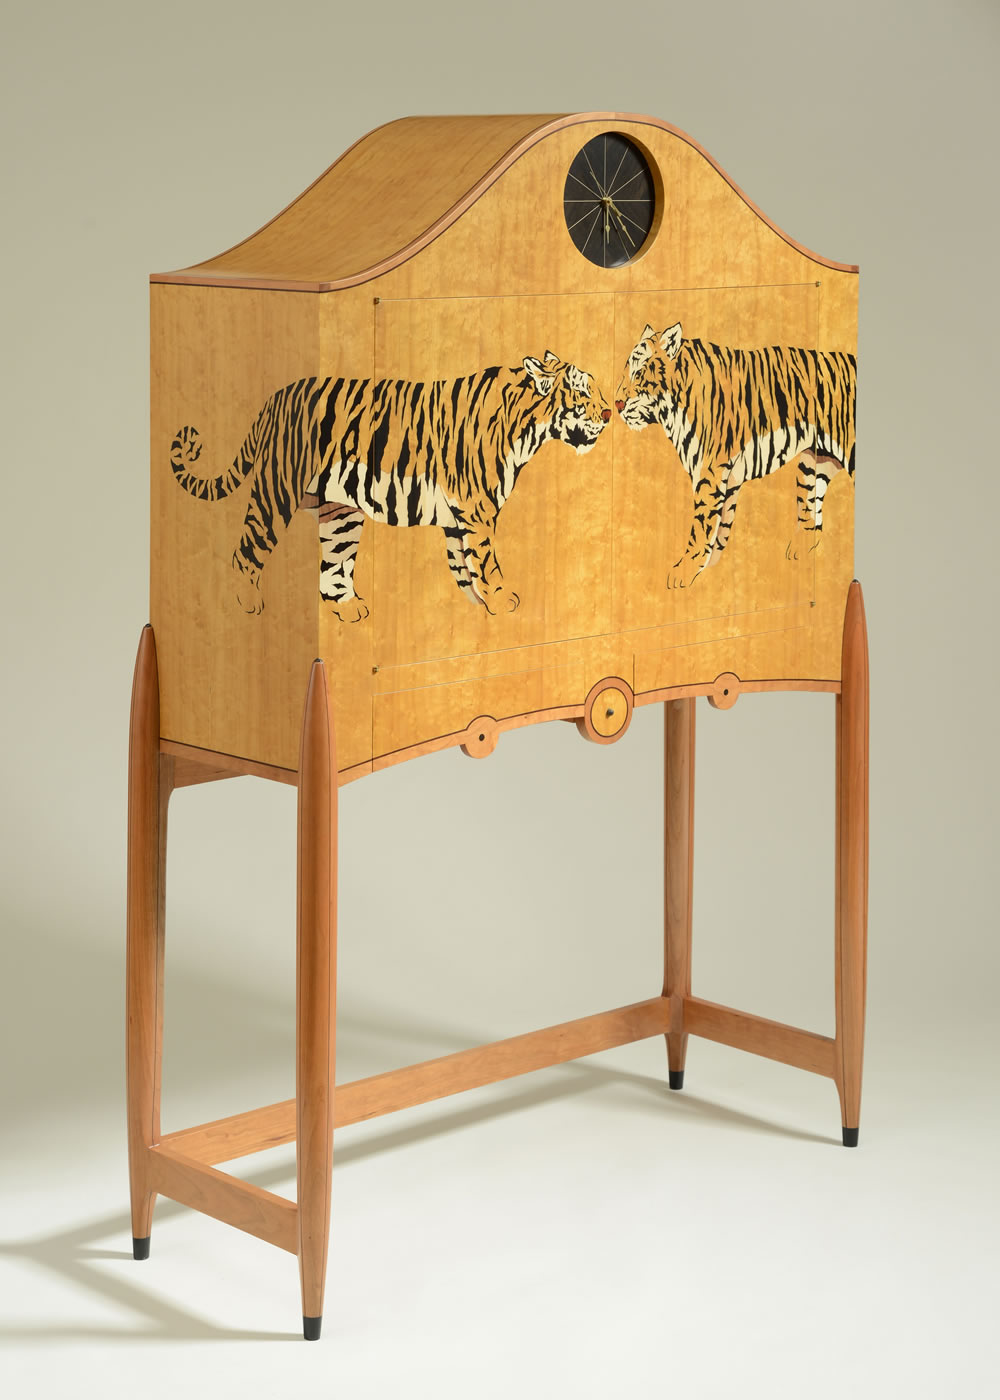 Wooden Studio Furniture ~ Animal silas kopf woodworking inlaid wood marquetry